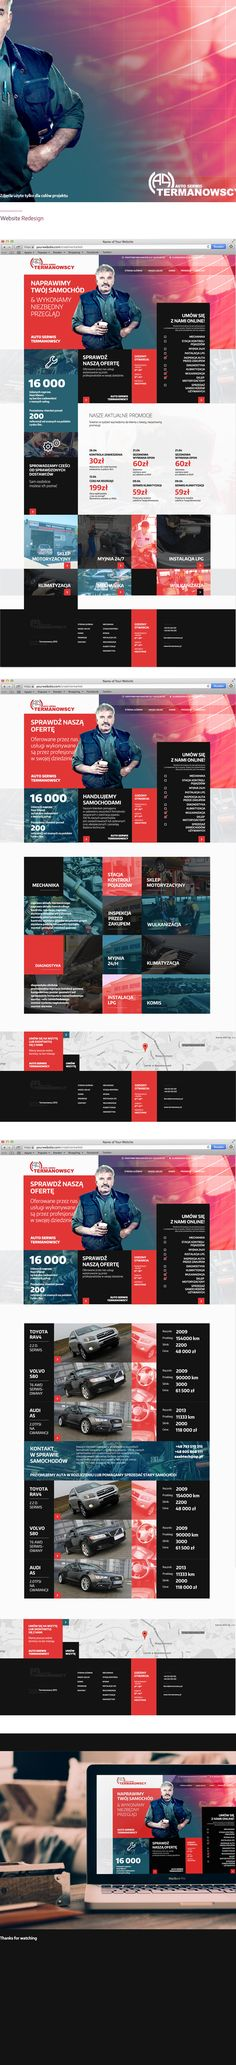 TERMANOWSCY AUTO SERWIS on Behance